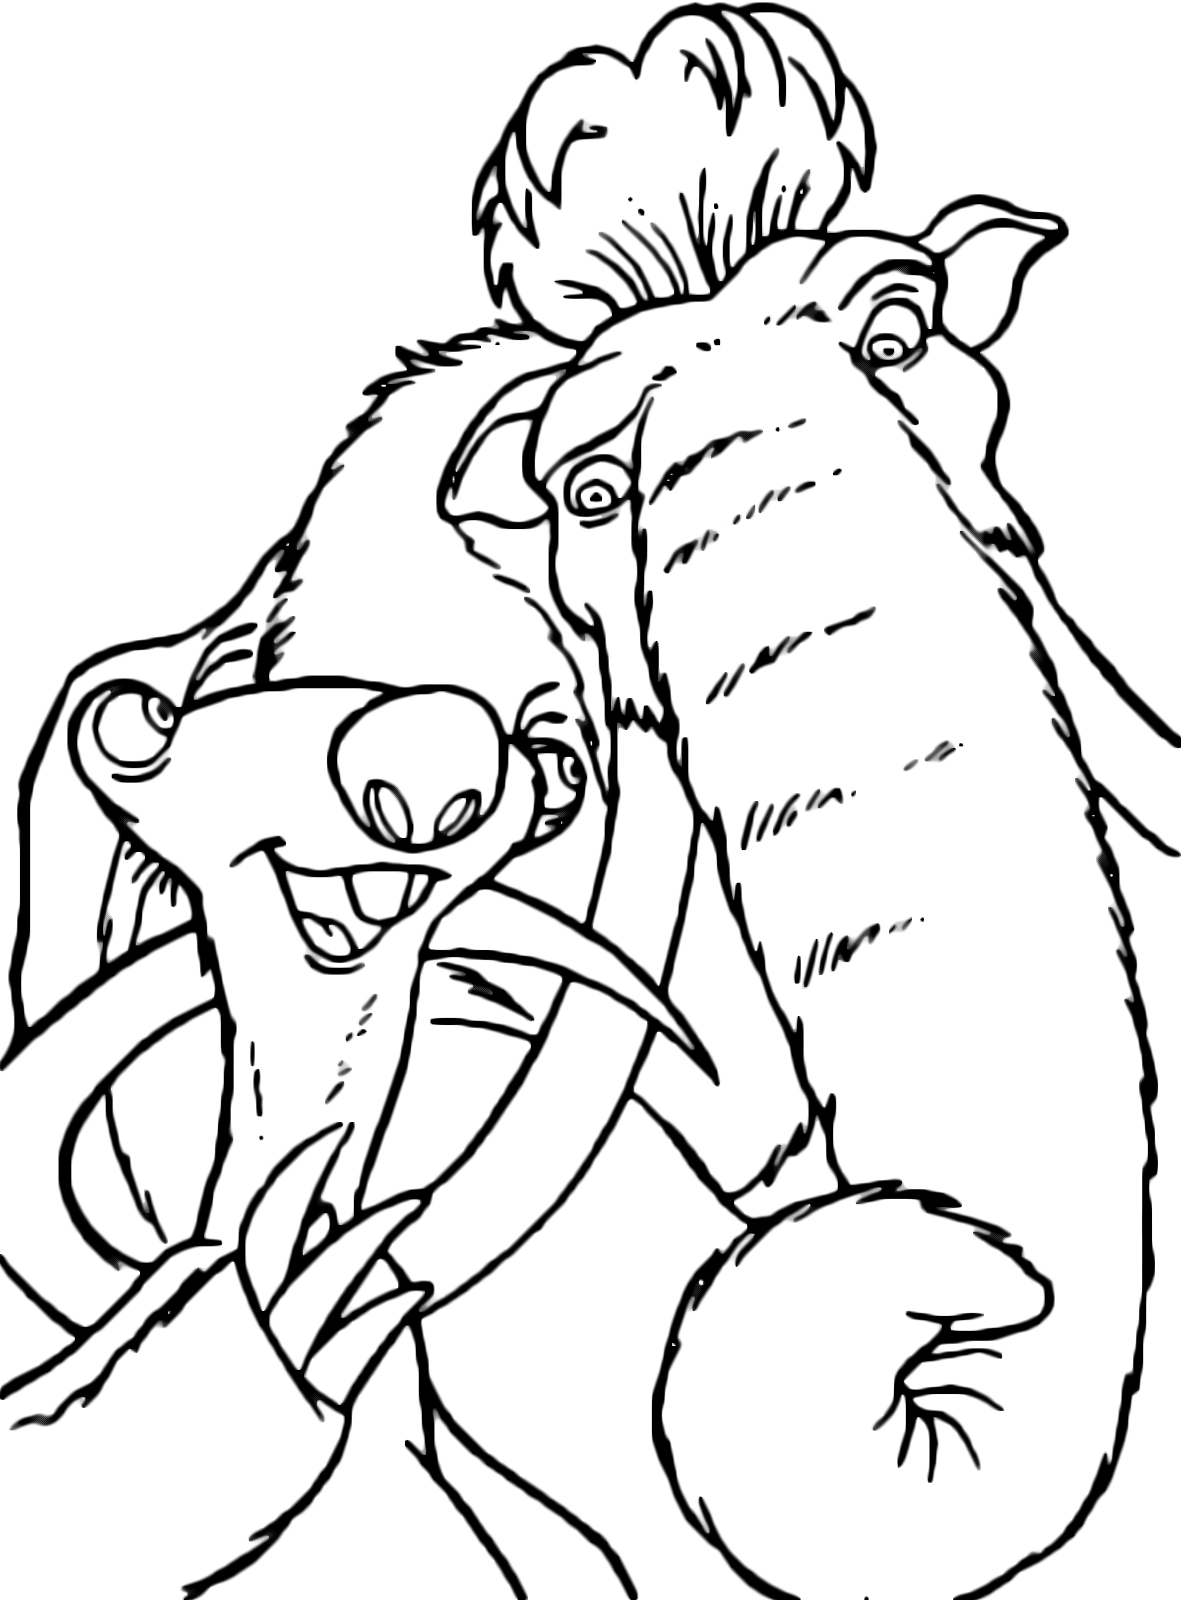 Ice Age - Sid the sloth speaks with Manny the mammoth